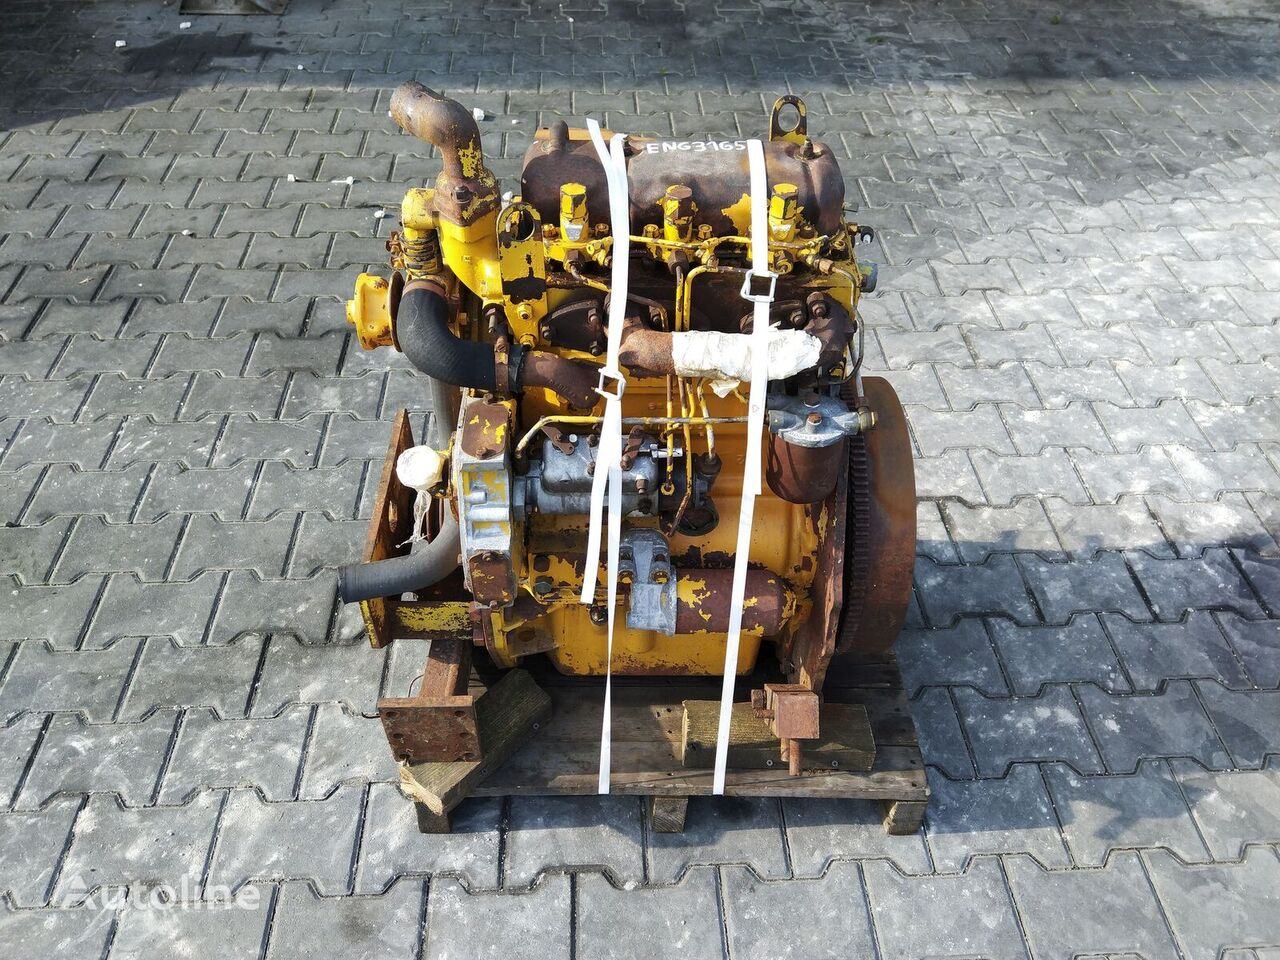 PERKINS 37111330 3 Cylindrowy Engine engine for PERKINS 152UR9940 37111330 3 Cylindrowy Silnik Engine  wheel loader